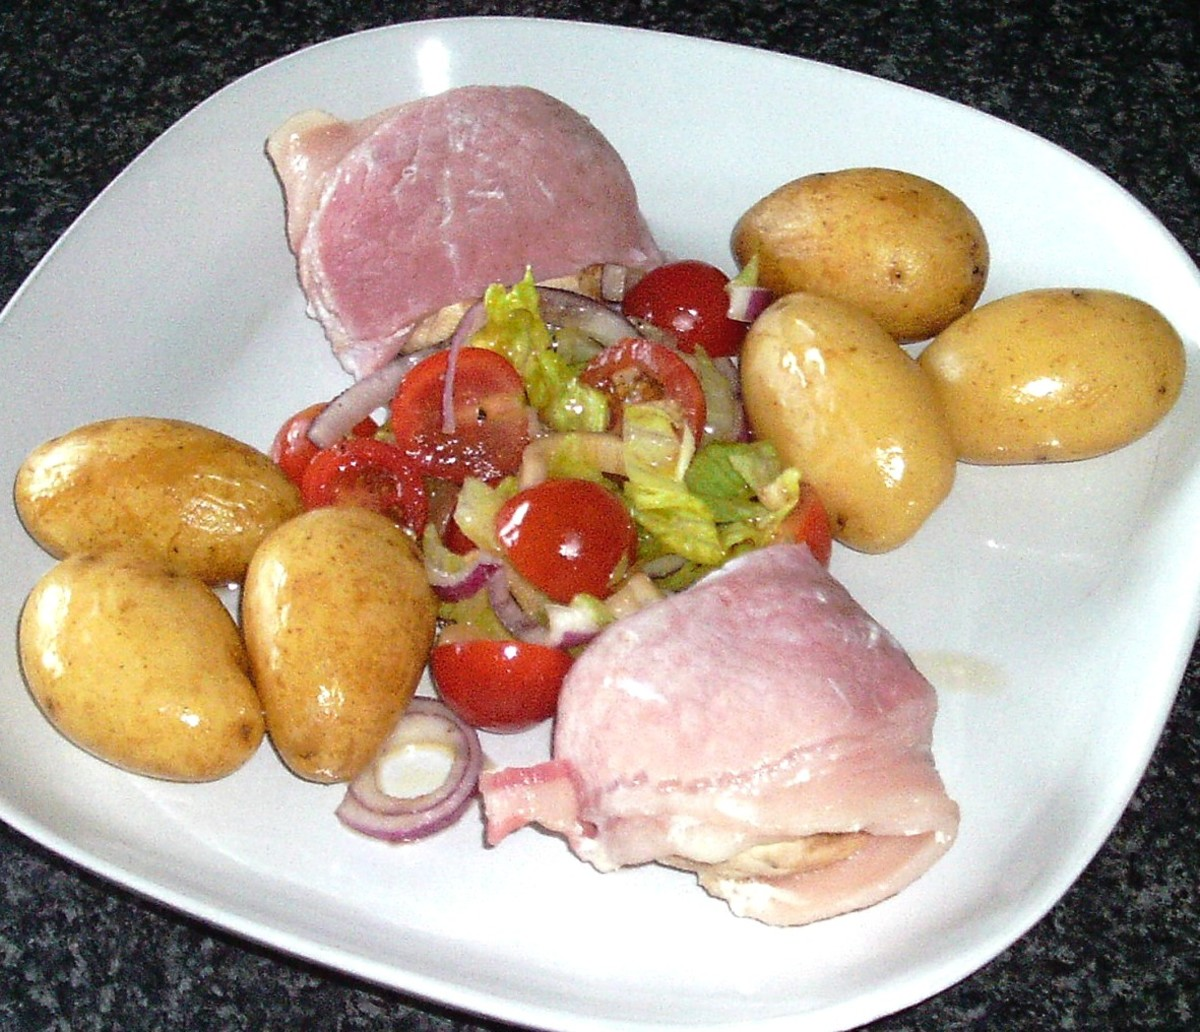 Garlic mushroom and mozzarella bacon wrapped mushrooms are served with boiled potatoes and dressed simple salad